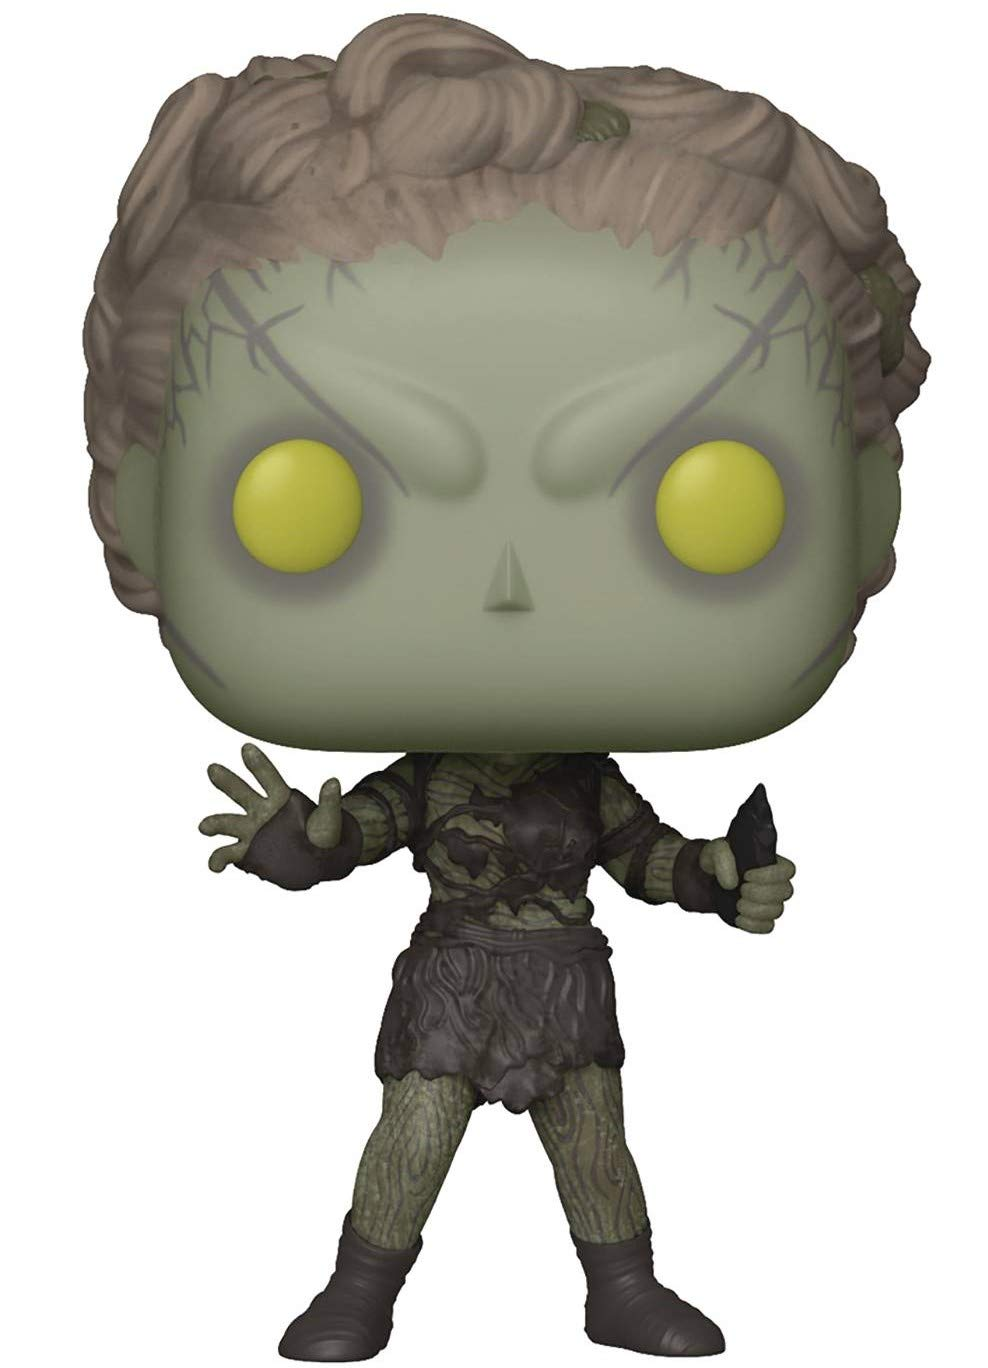 Funko Pop Children of The Forest Vinyl Figure Game of Thrones Includes Pop Box Protector Case